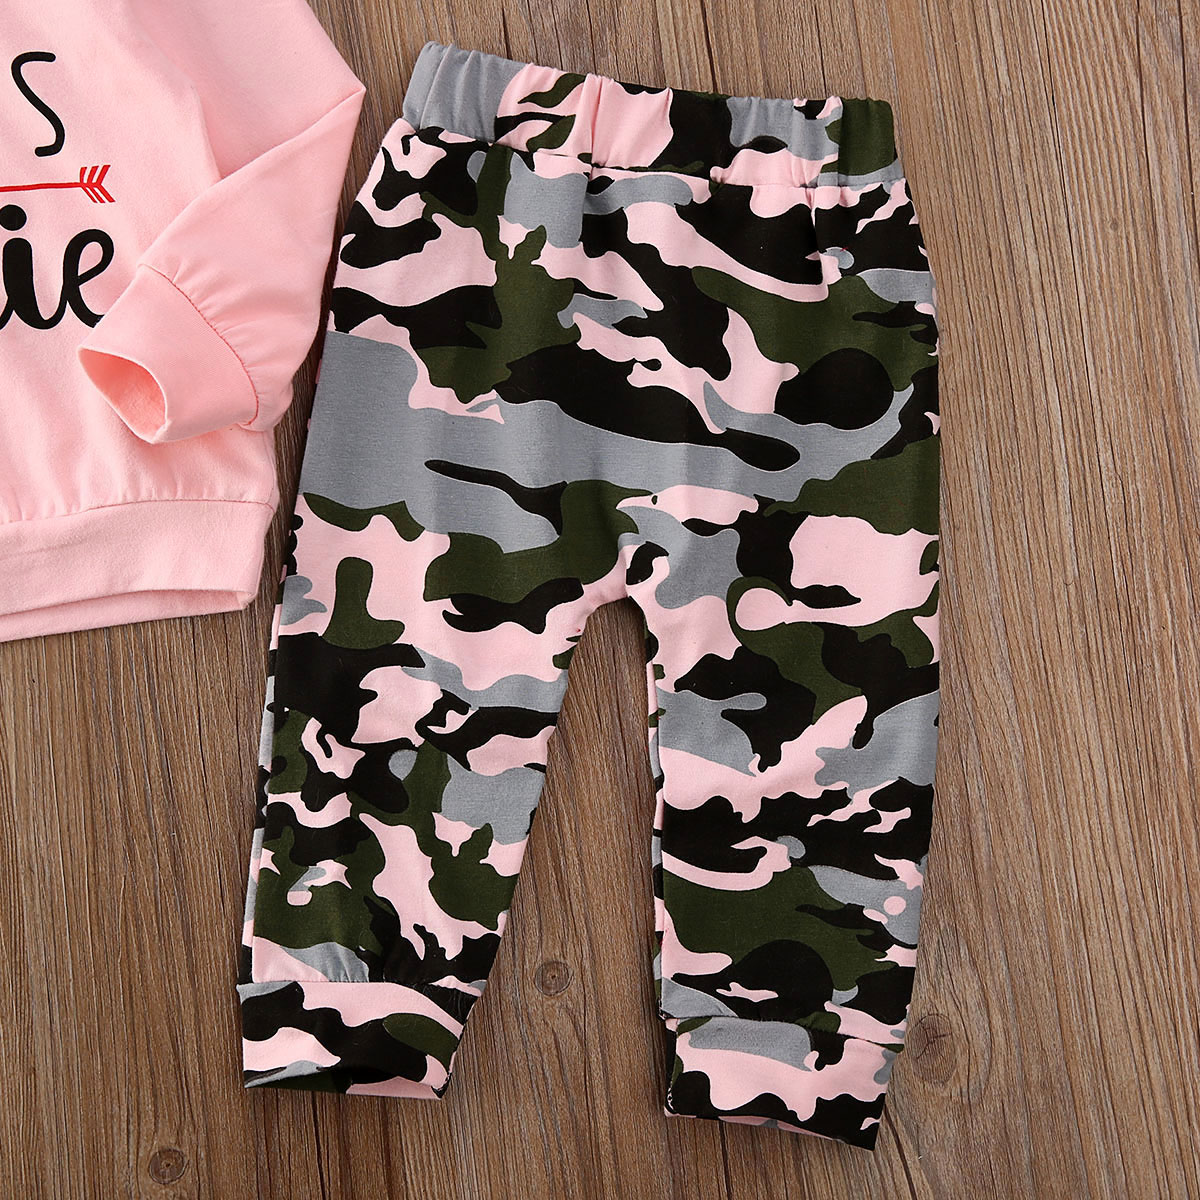 Купить с кэшбэком Cotton Girl Tracksuit 0-24M Toddler Kids Baby Girl Clothes Sets Letter Print Hoodie Top Camouflage Pants Outfit Sets Tracksuit